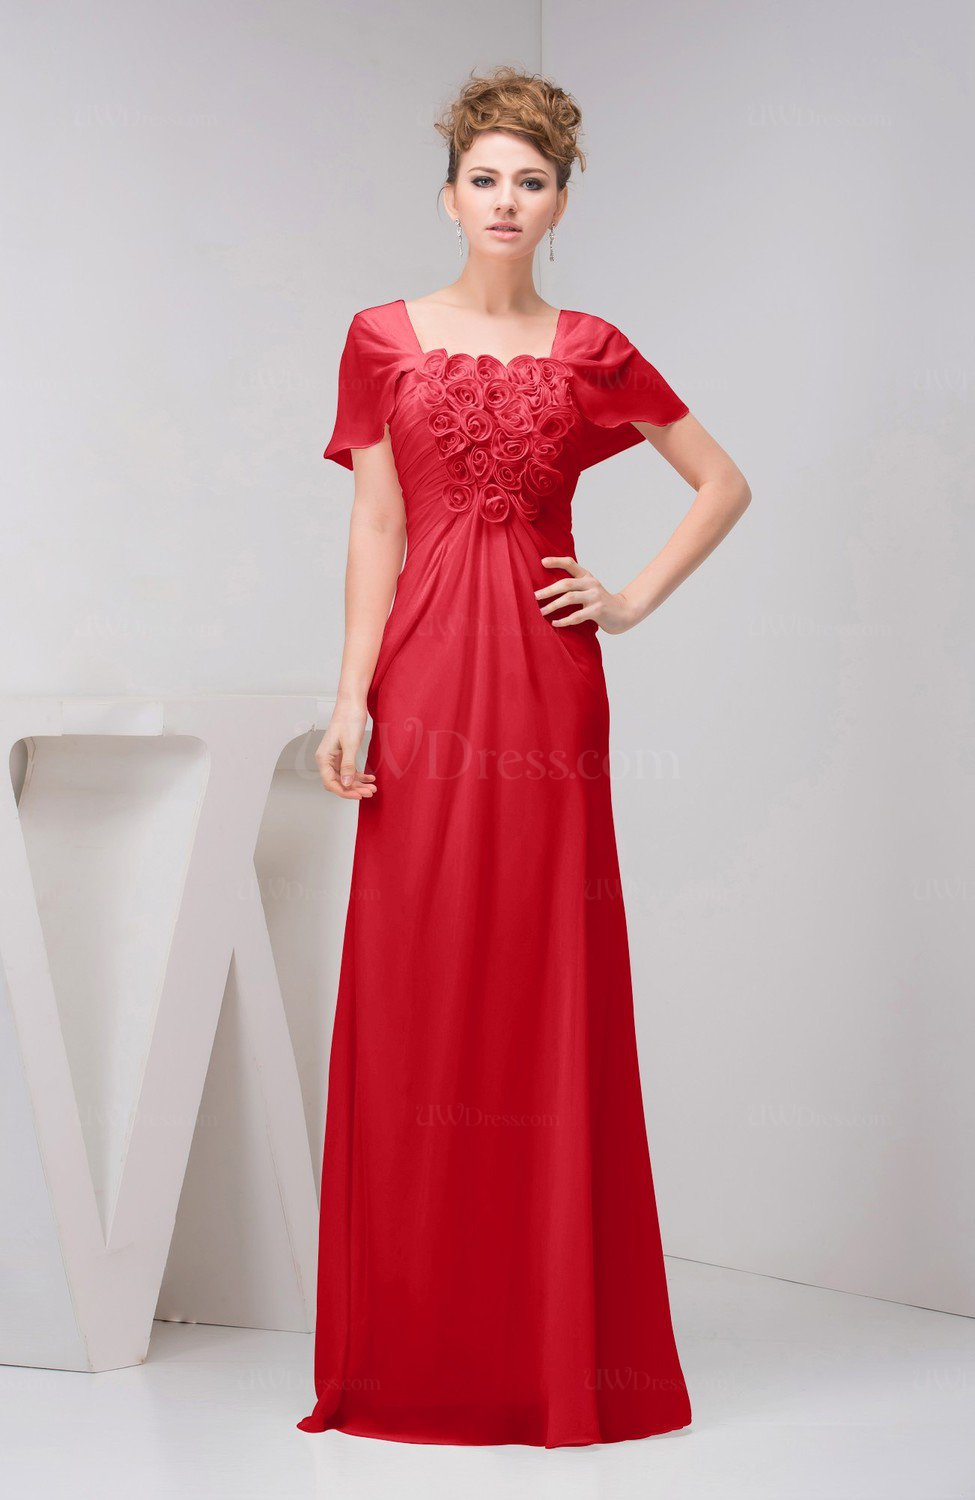 Red With Sleeves Bridesmaid Dress Chiffon Fall Casual Natural Outdoor A Line